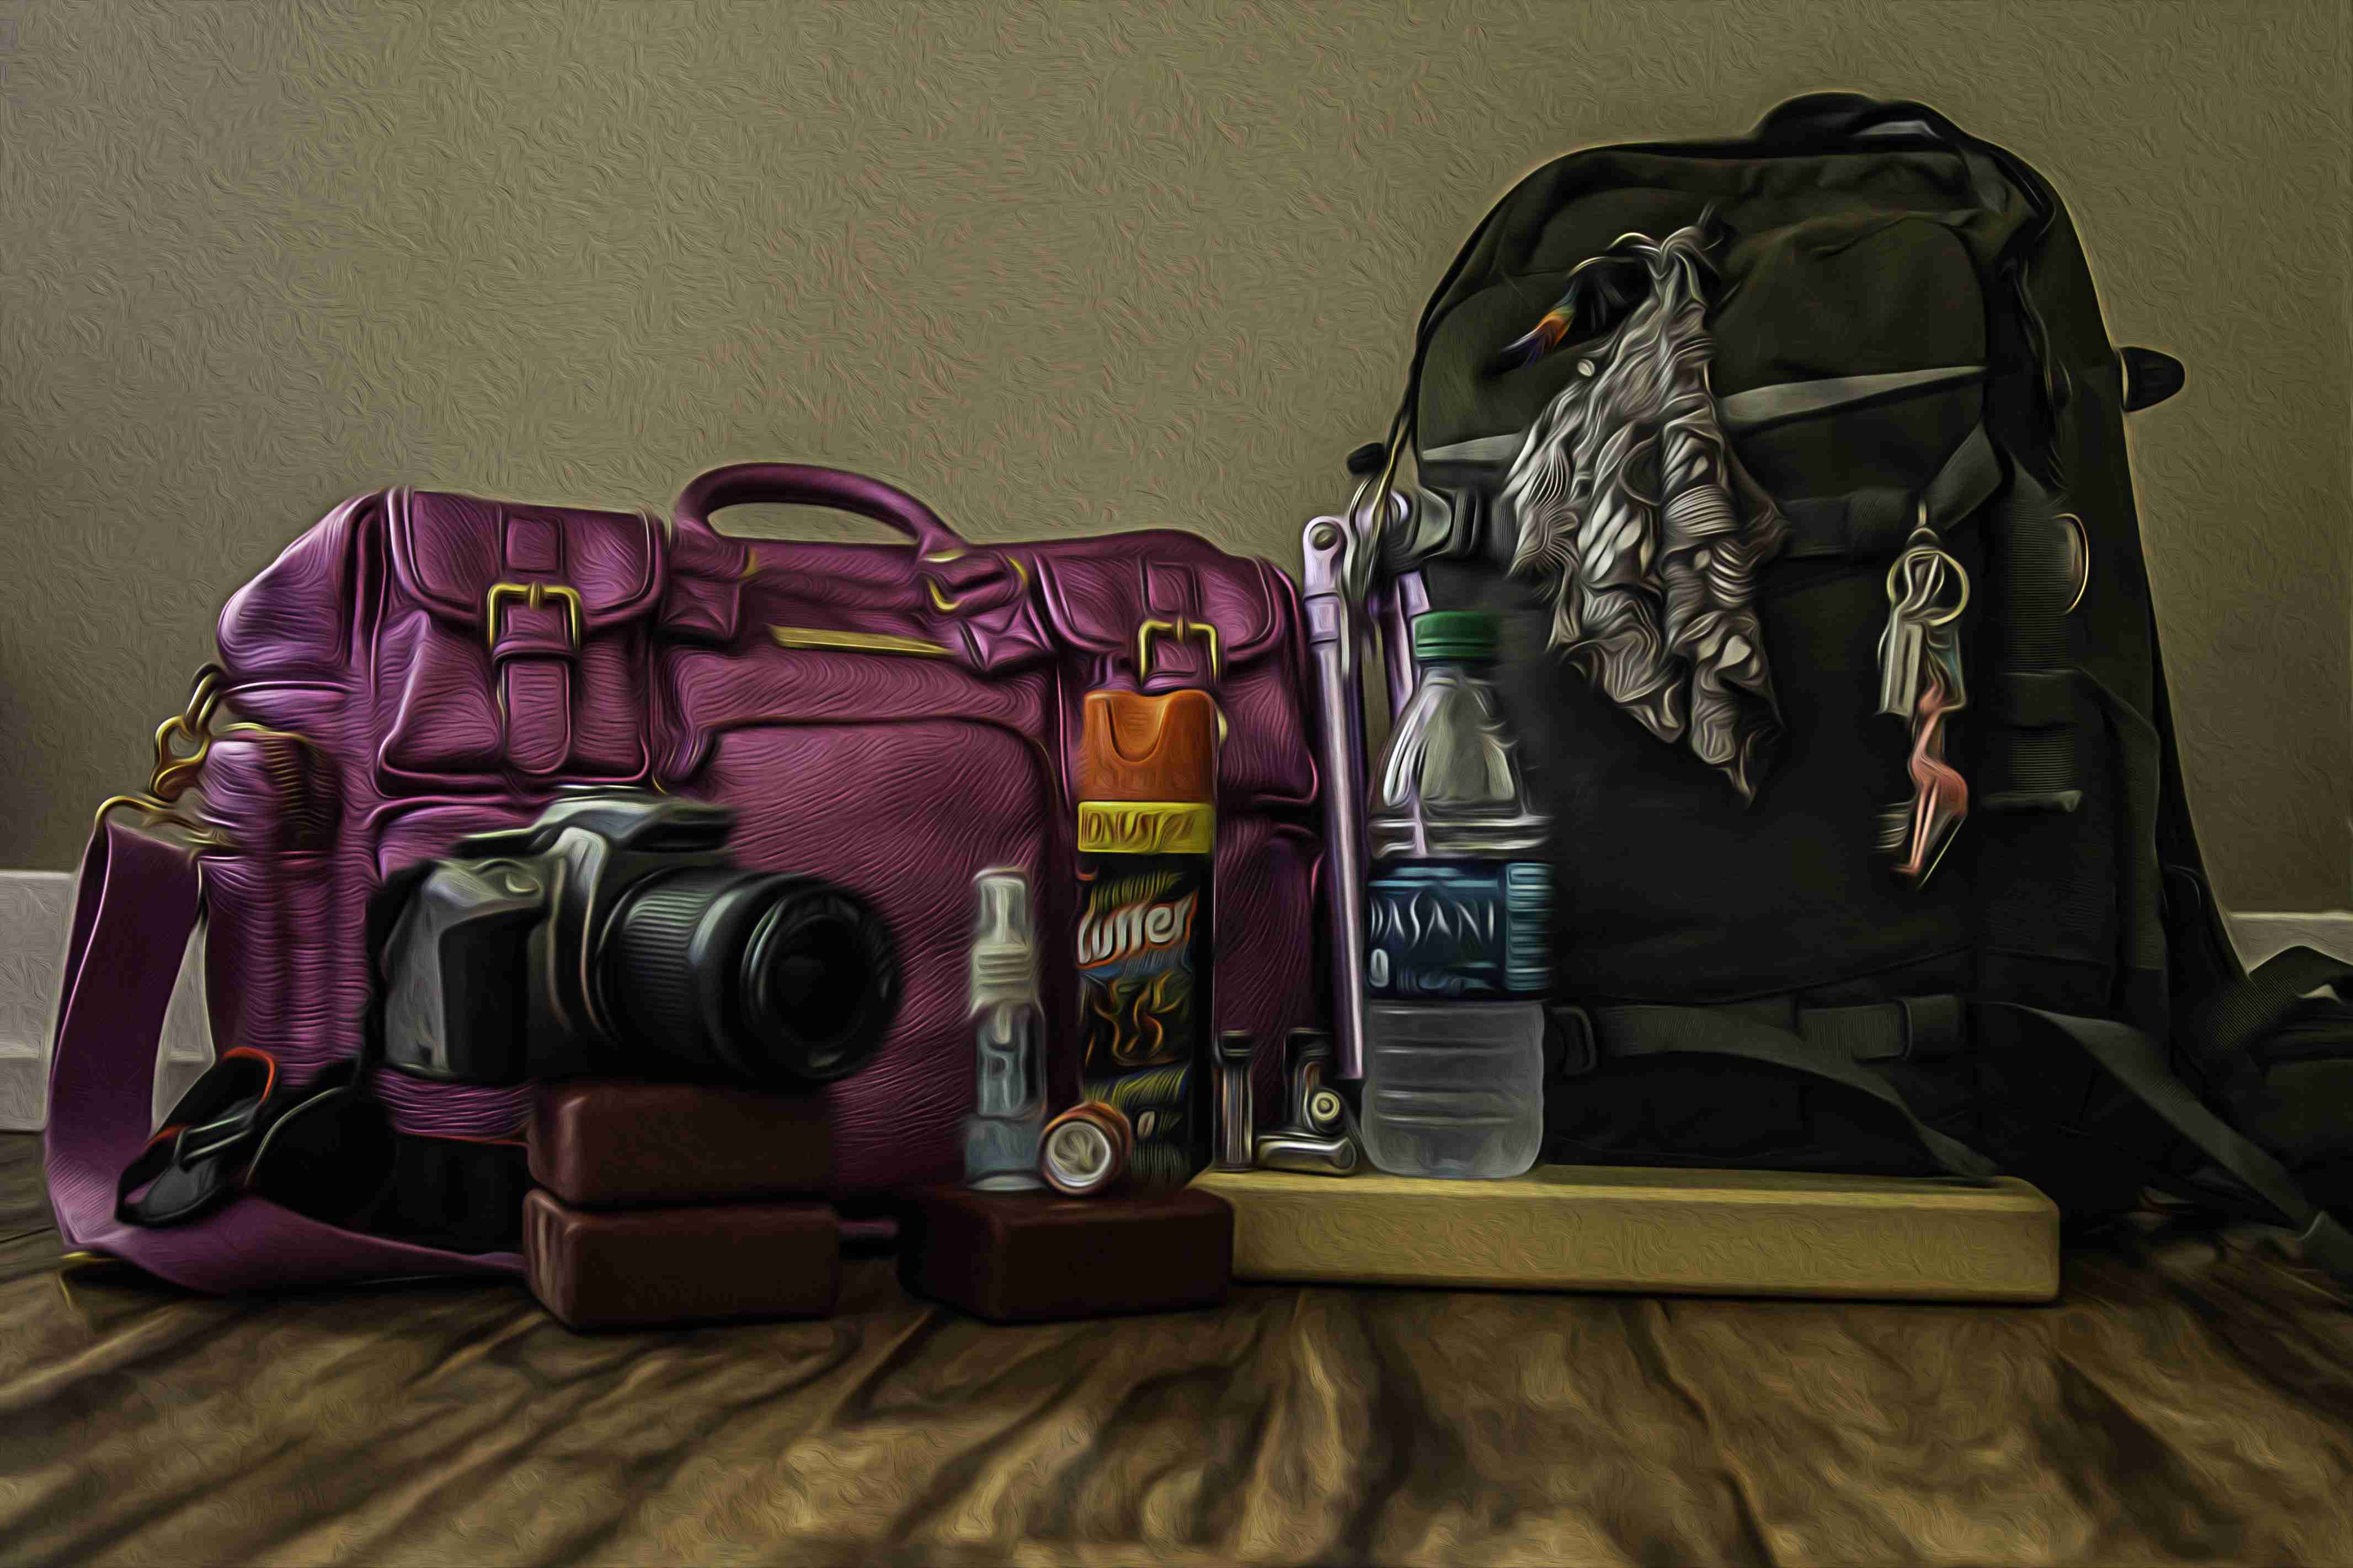 Pic of Camera Bags with stuff